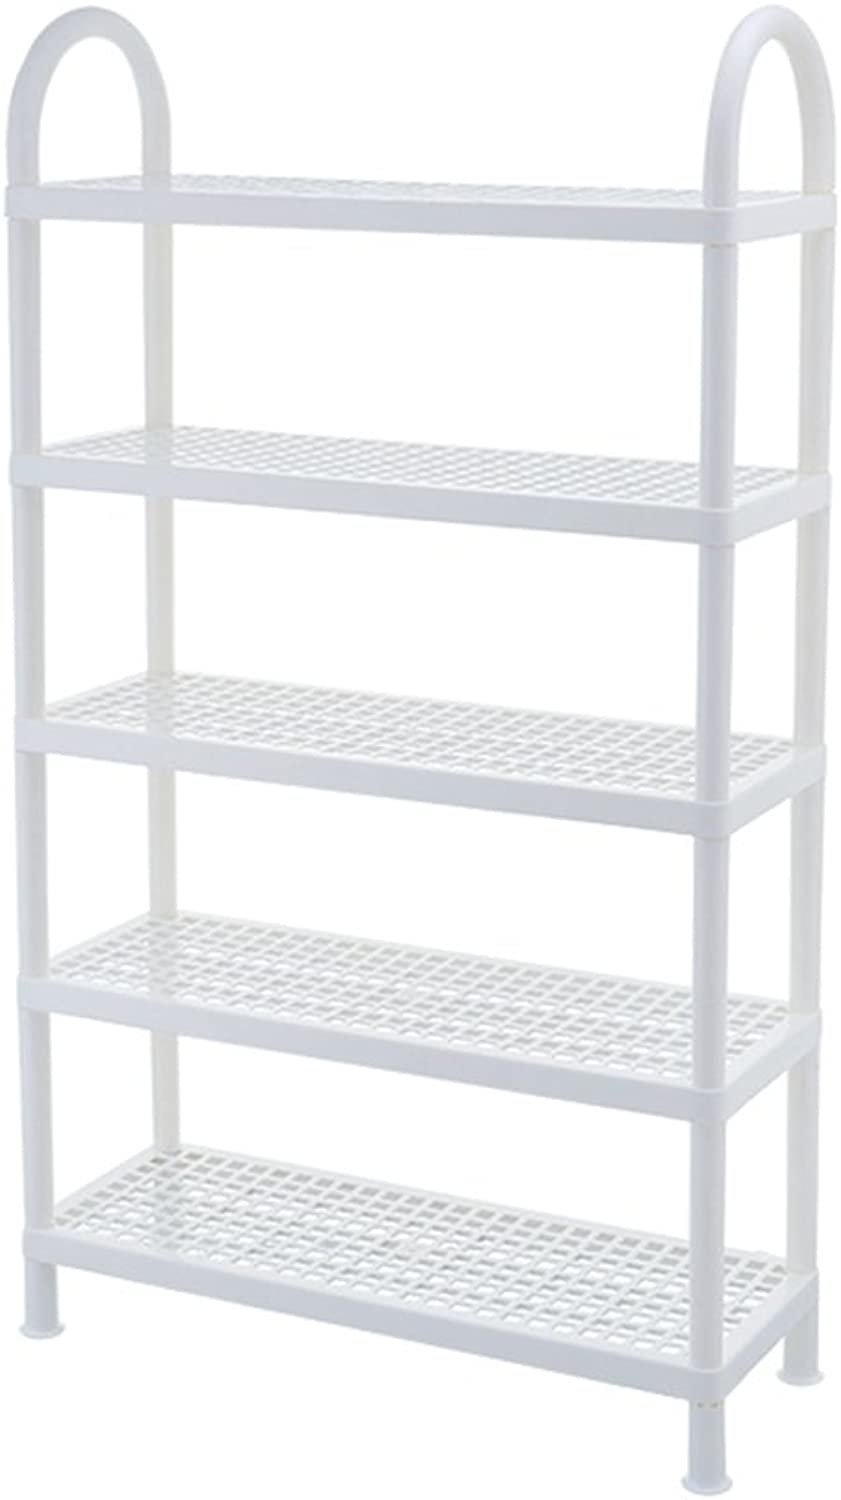 DR shoes Rack Plastic shoes Rack Simple Multi-Layer Assembly Bedroom Dormitory Small shoes Rack Home shoes Cabinet White Storage Rack Storage Shelf (Size   55x20.3x95.8cm)